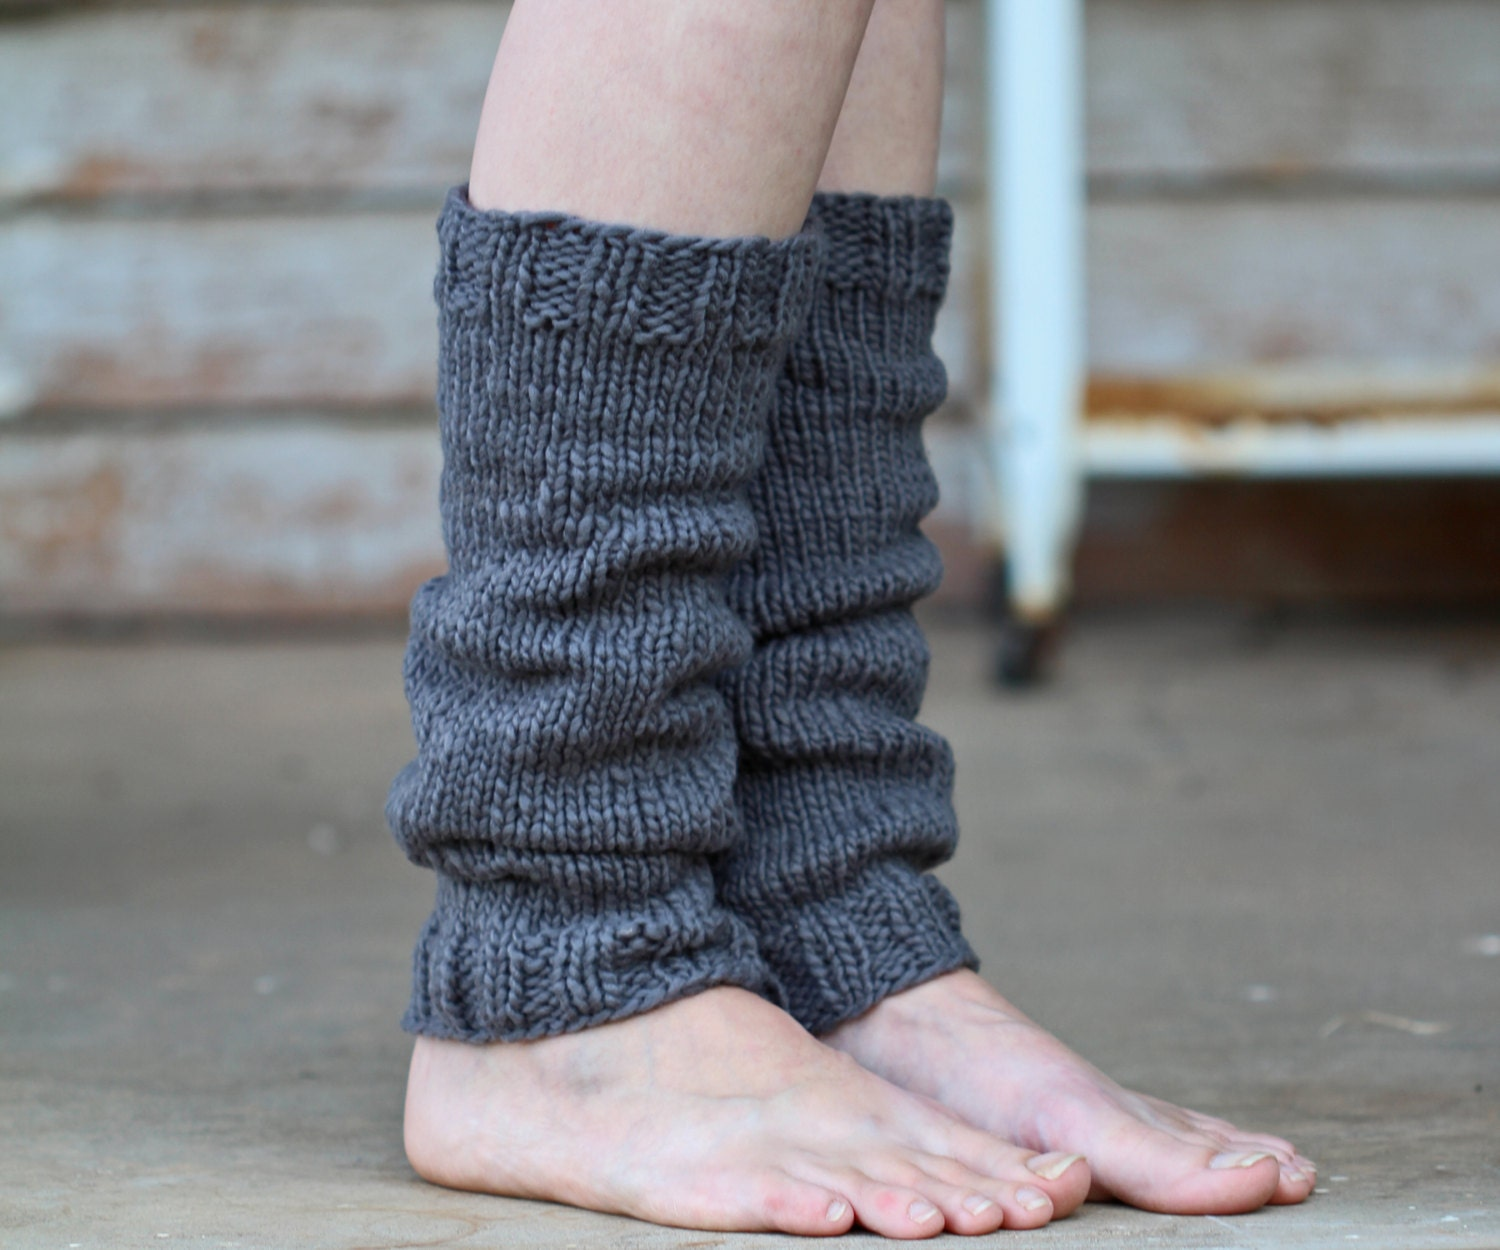 Leg Warmers Knitting Pattern MEEK a set of INSTRUCTIONS to